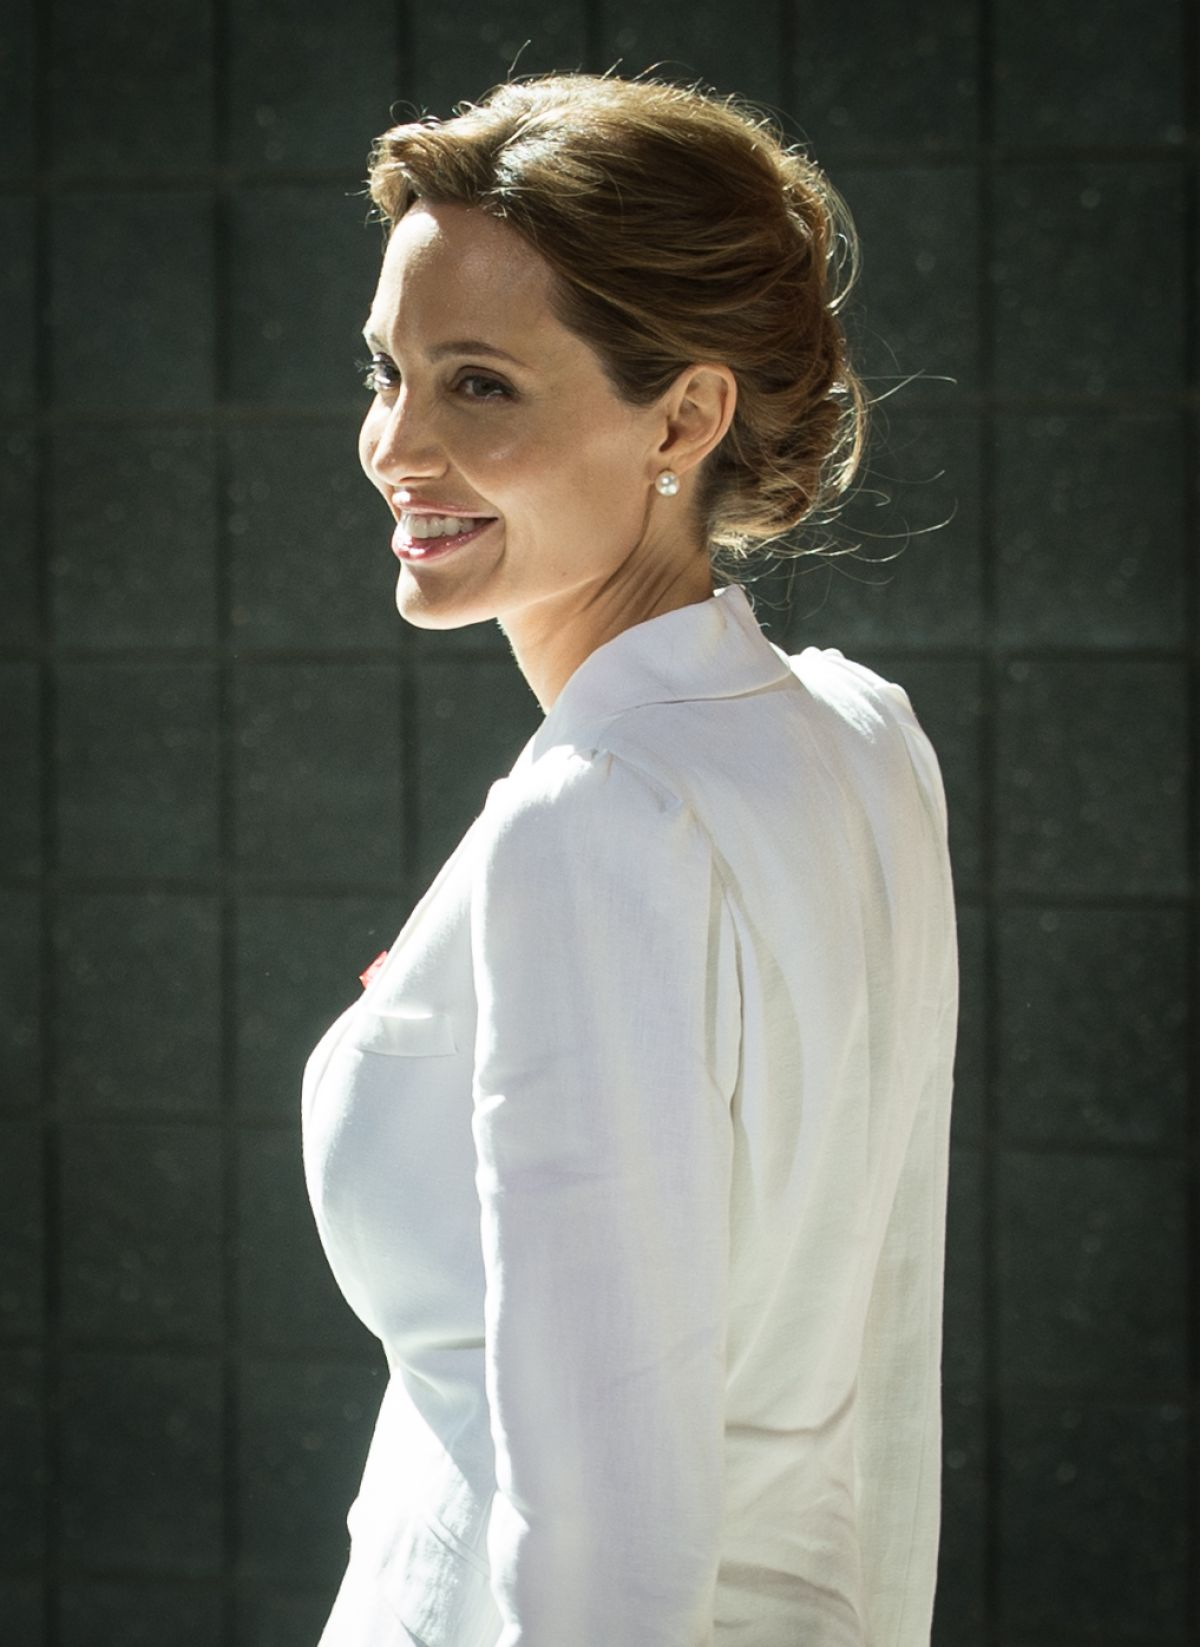 ... Summit to End Sexual Violence in Conflict - HawtCelebs - HawtCelebs: http://www.hawtcelebs.com/angelina-jolie-at-global-summit-to-end-sexual-violence-in-conflict/